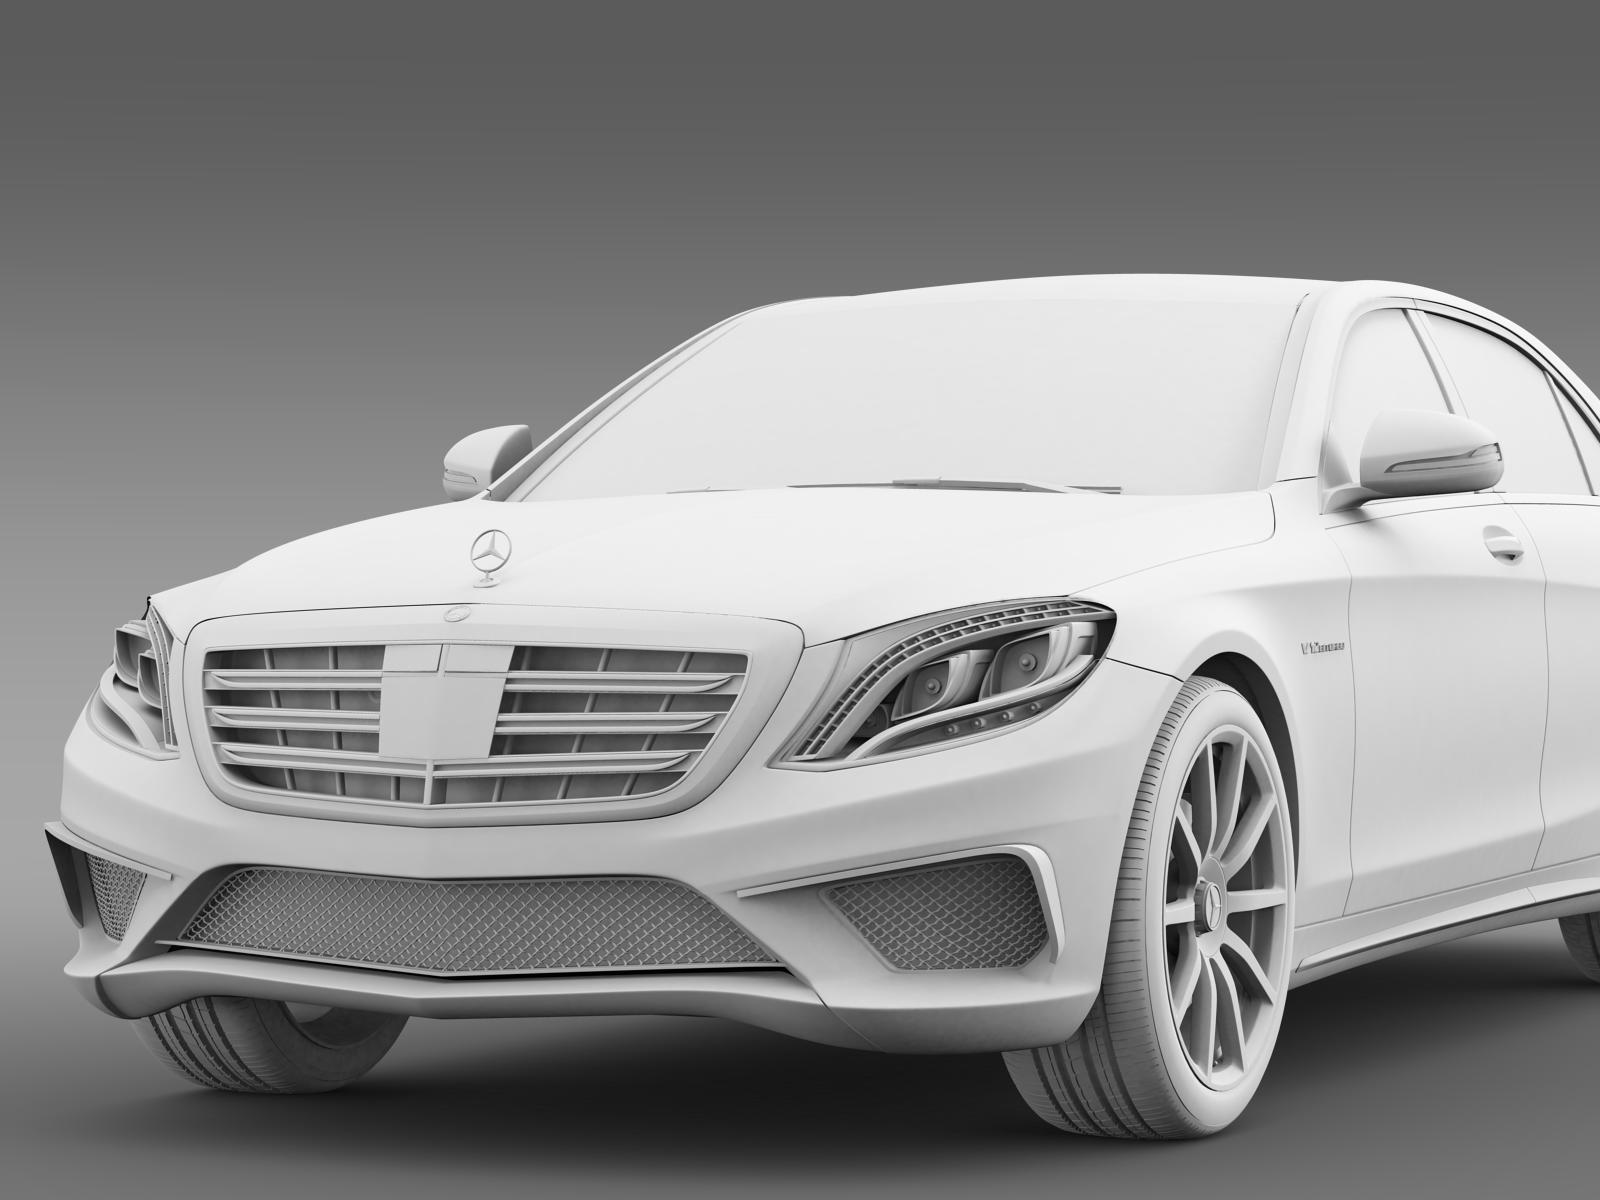 Mercedes benz s 65 amg w222 2014 3d model buy mercedes for Who buys mercedes benz